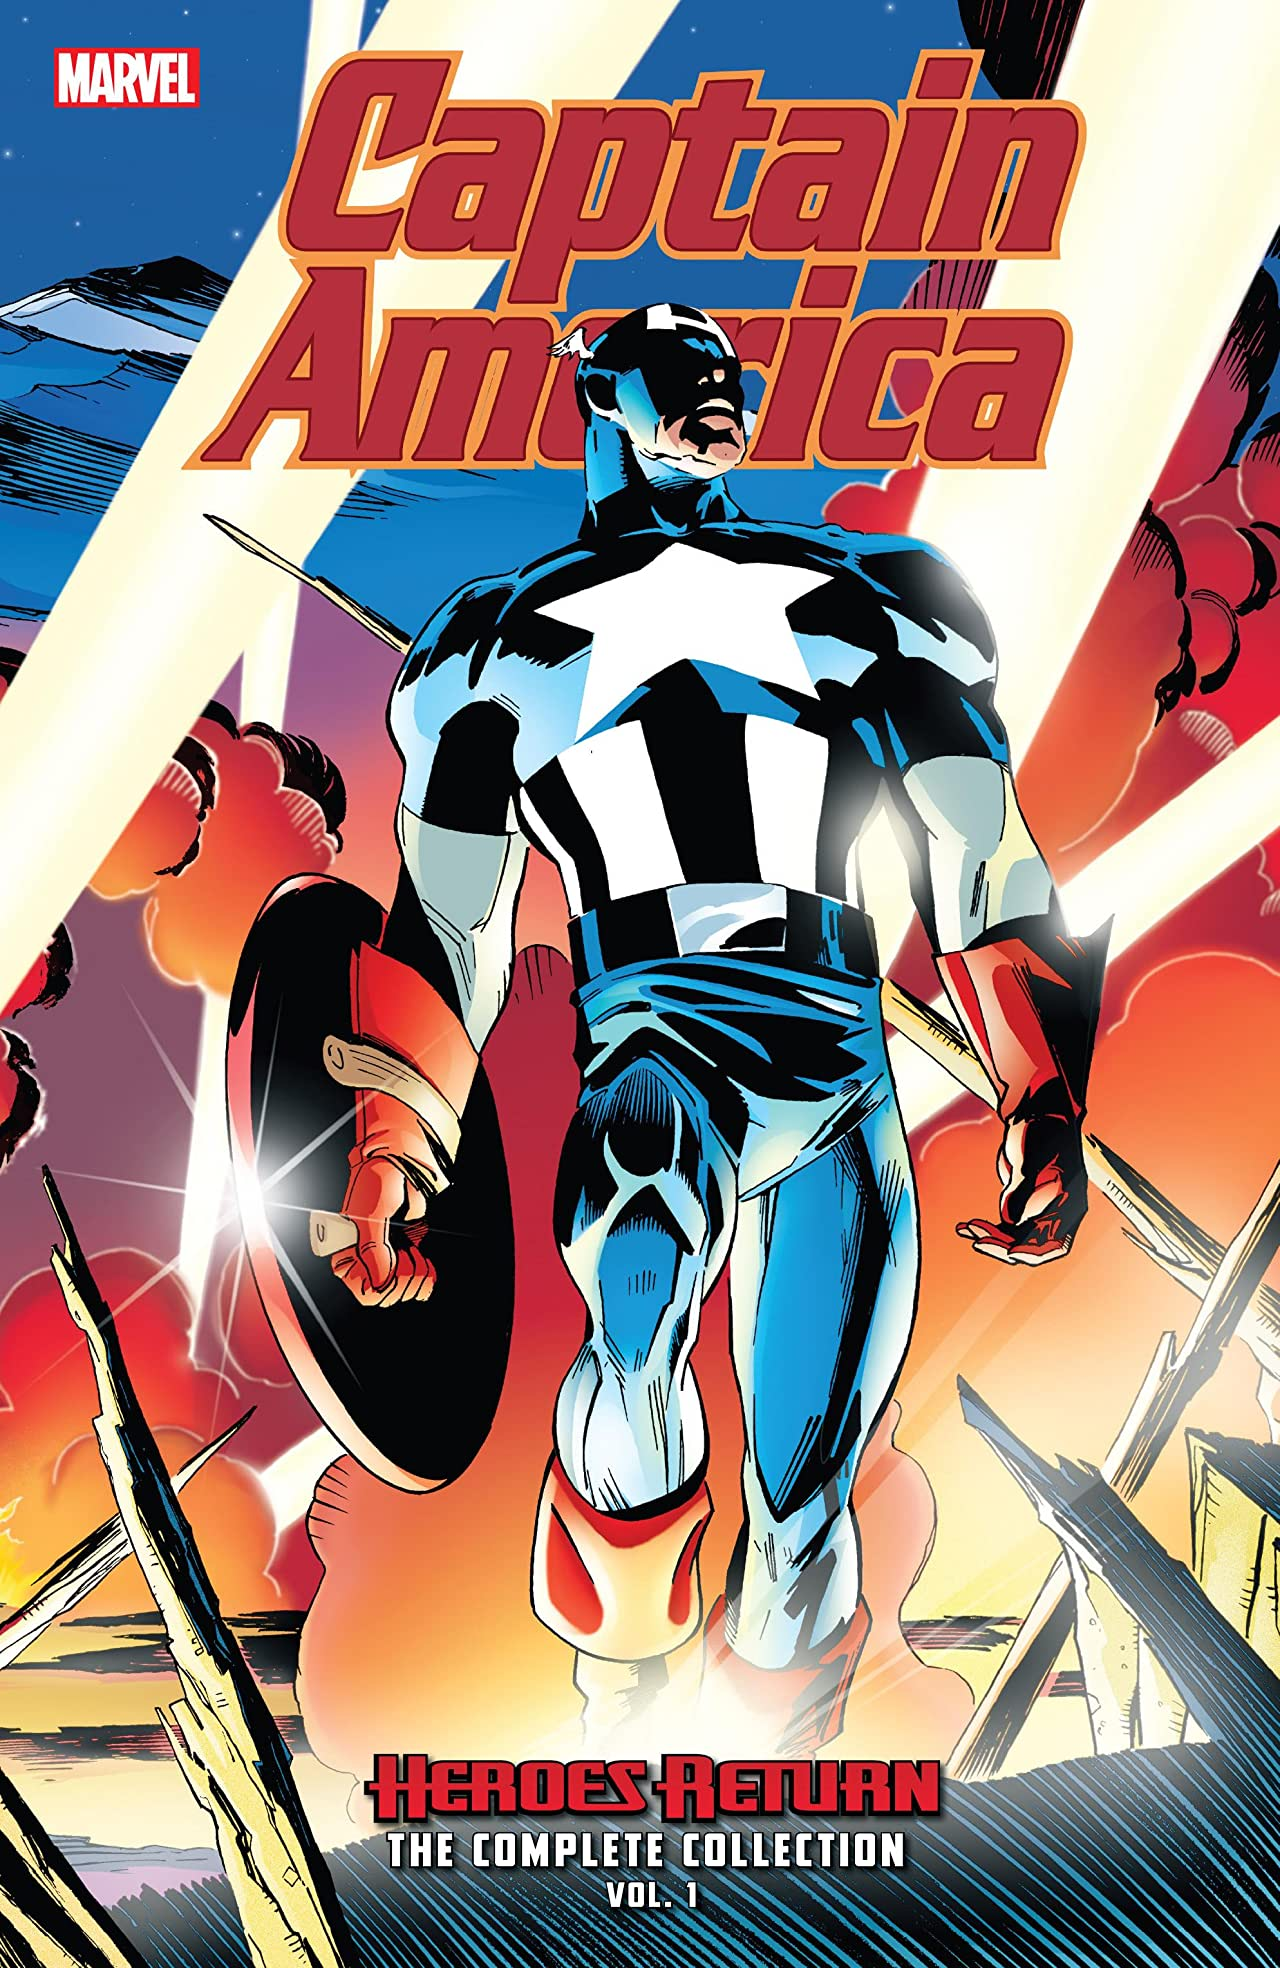 Captain America: Heroes Return - The Complete Collection Vol. 1 (Trade Paperback)